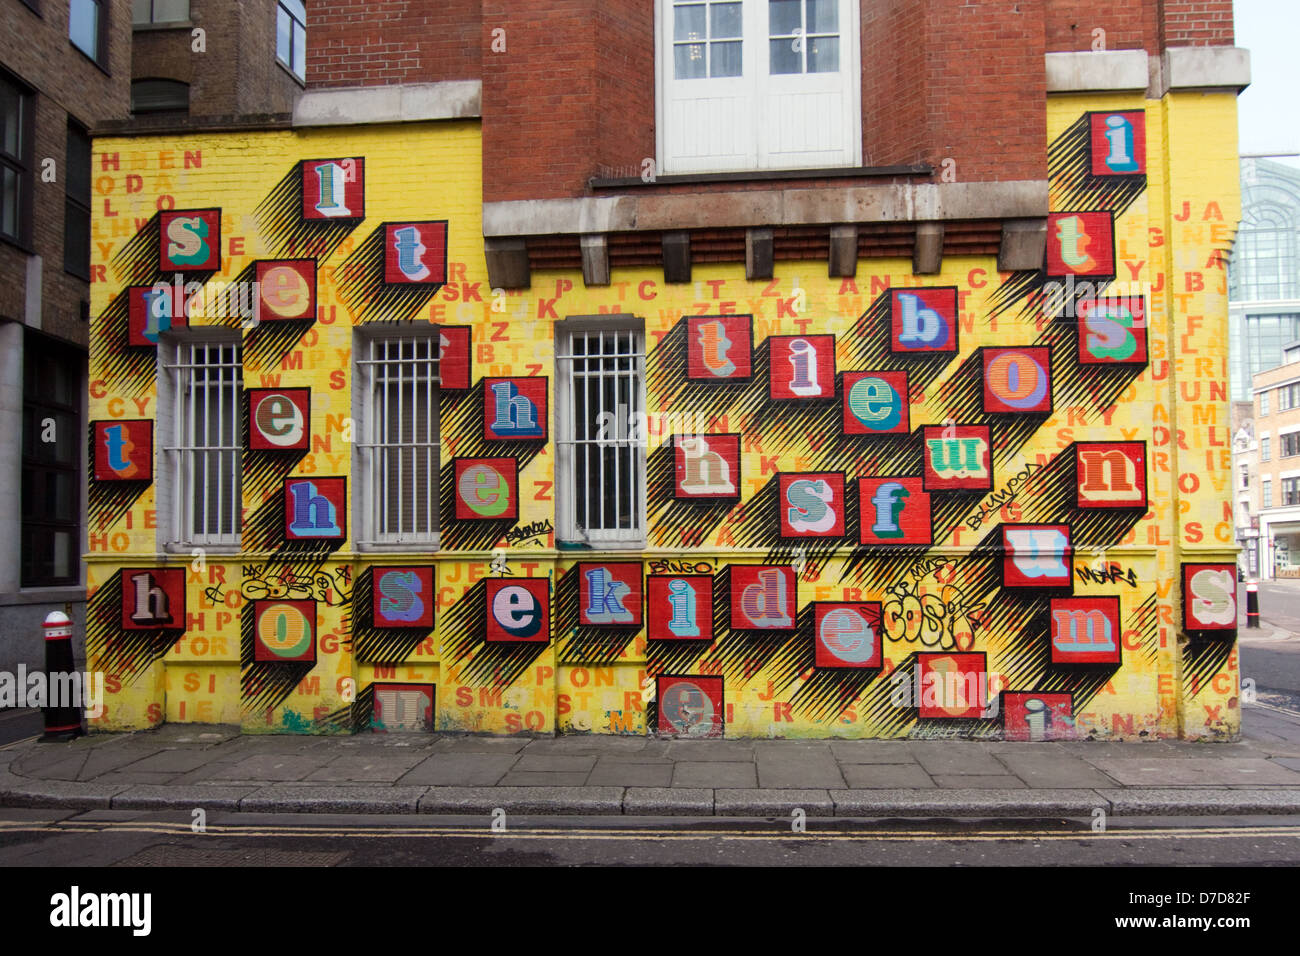 Ben Eine streetart in Shoreditch London .Ben Eine is famous for his use of different  fonts. - Stock Image